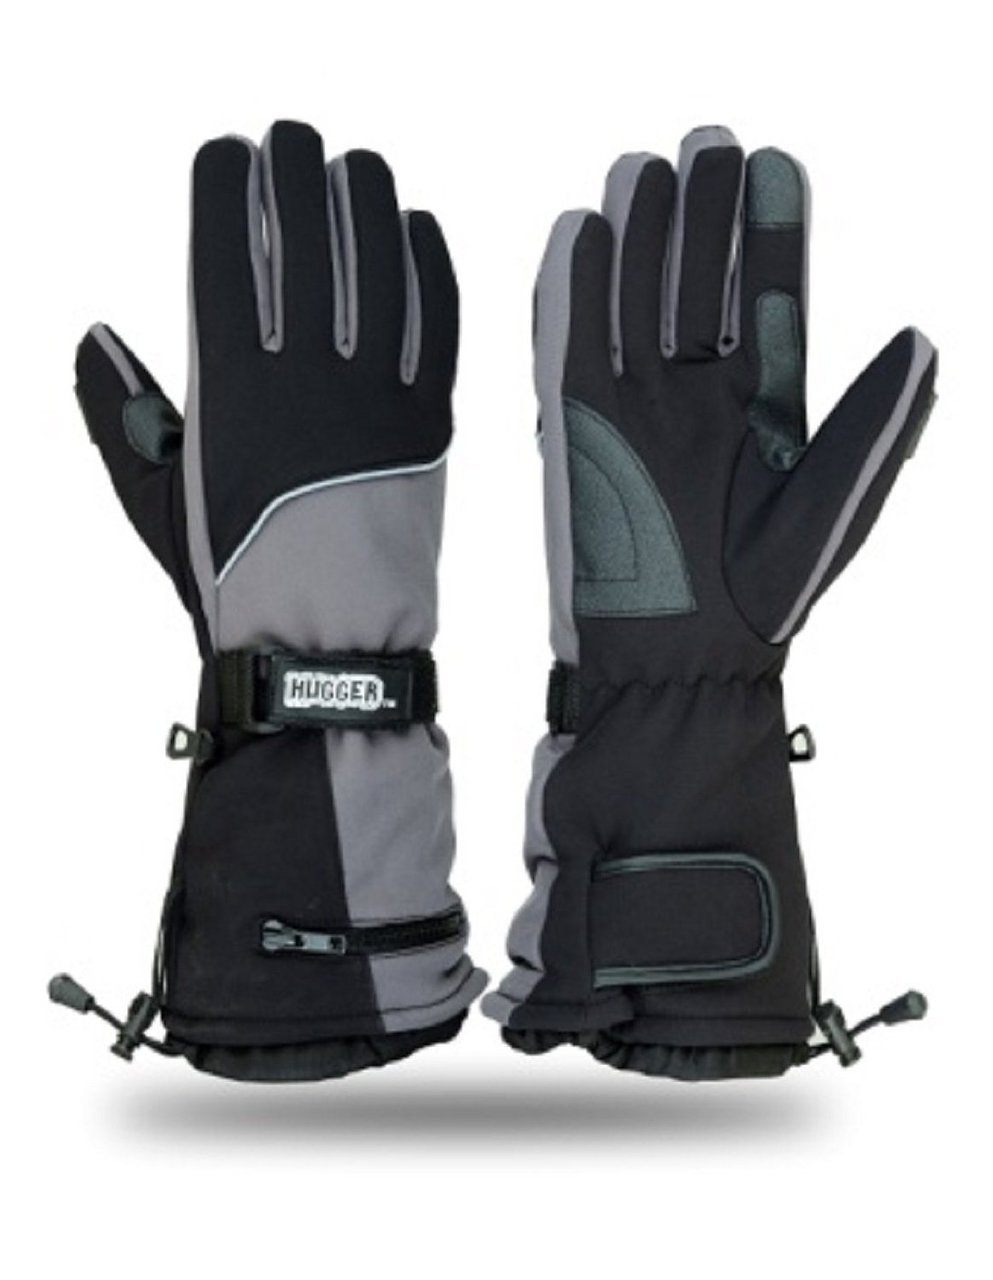 Hugger Glove Men's Textile Gauntlet Snowmobile Gloves or Motorcycle Gloves